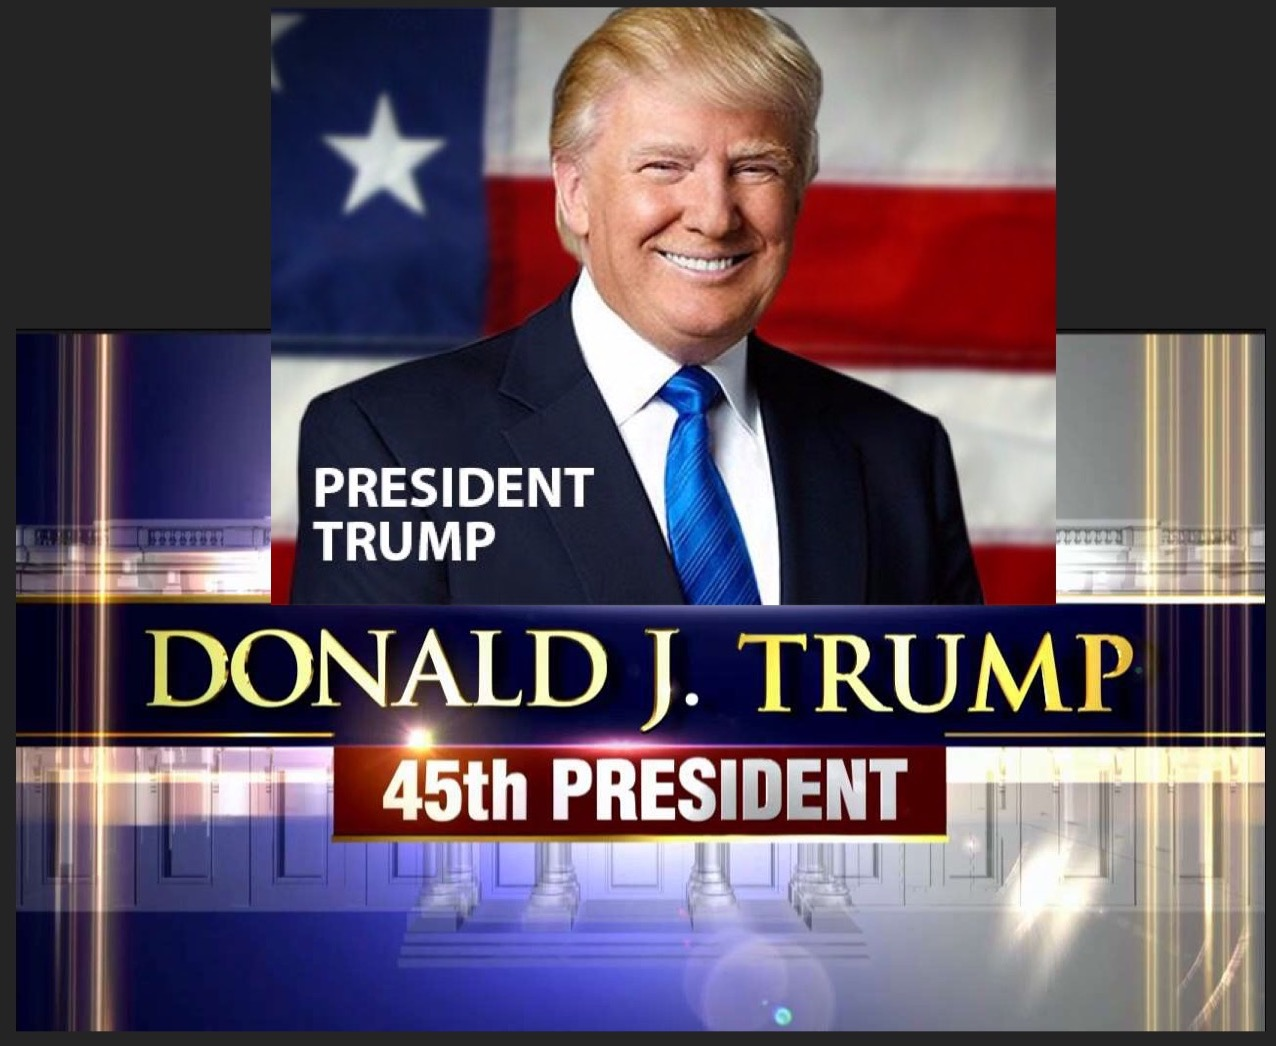 president of the united states The president of the united states is the head of state and head of government of the united states portrait [] since the office was established in 1789, 44 people have served as president.